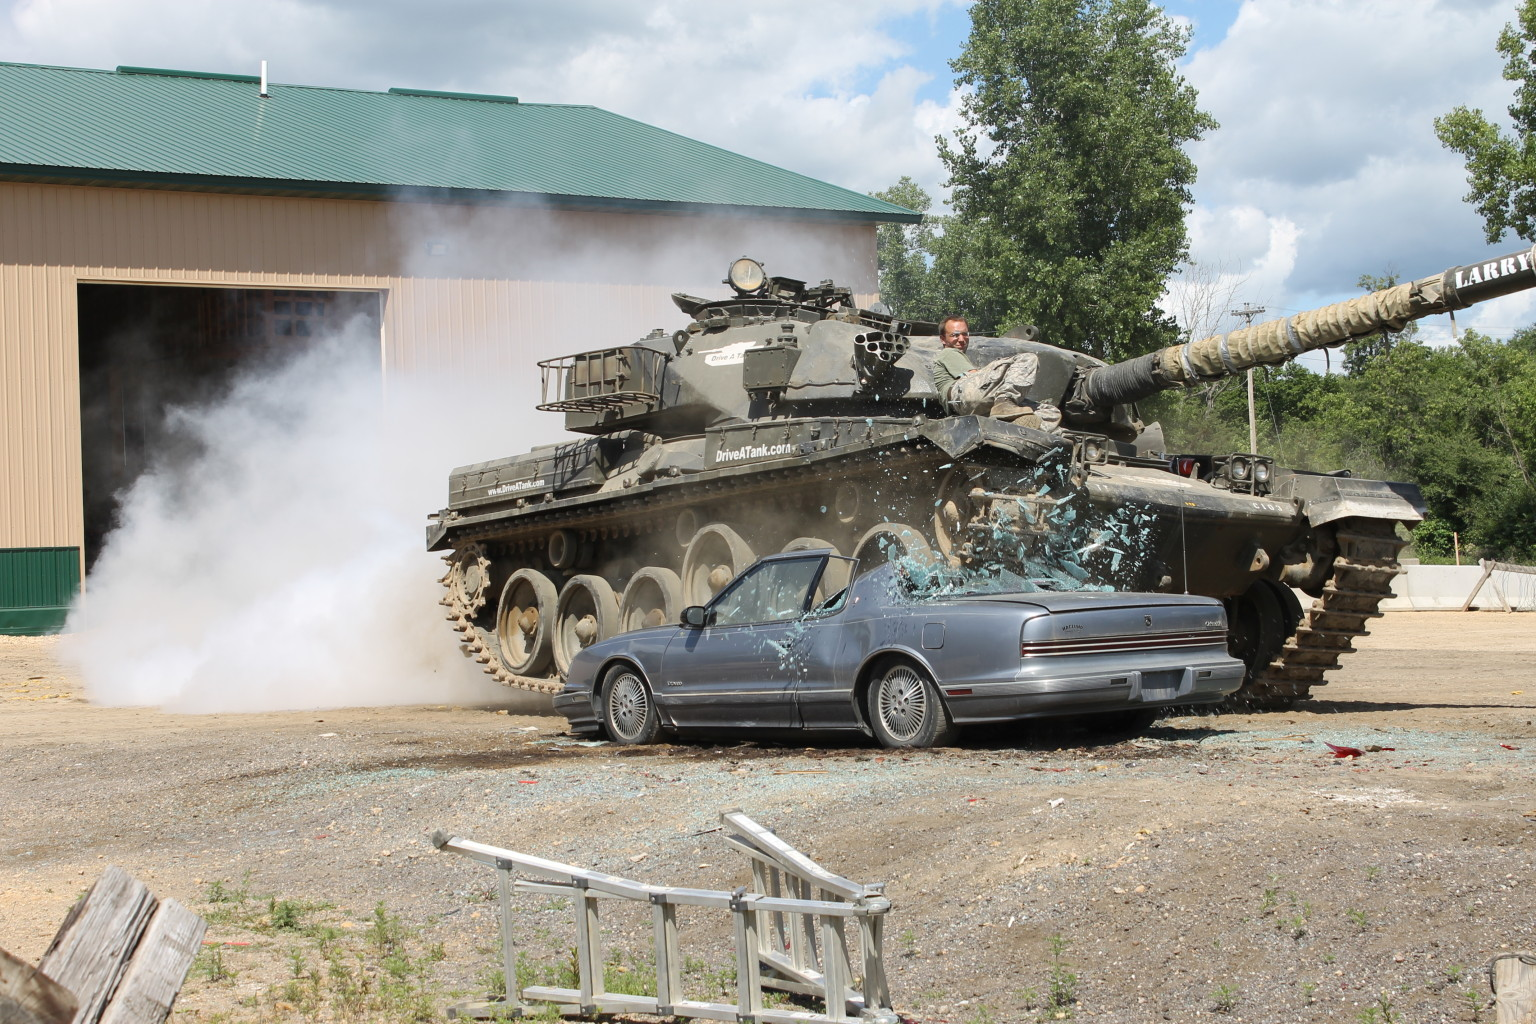 Drive A Tank >> Drive A Tank Experience Allows You To Drive A 60 Ton Car